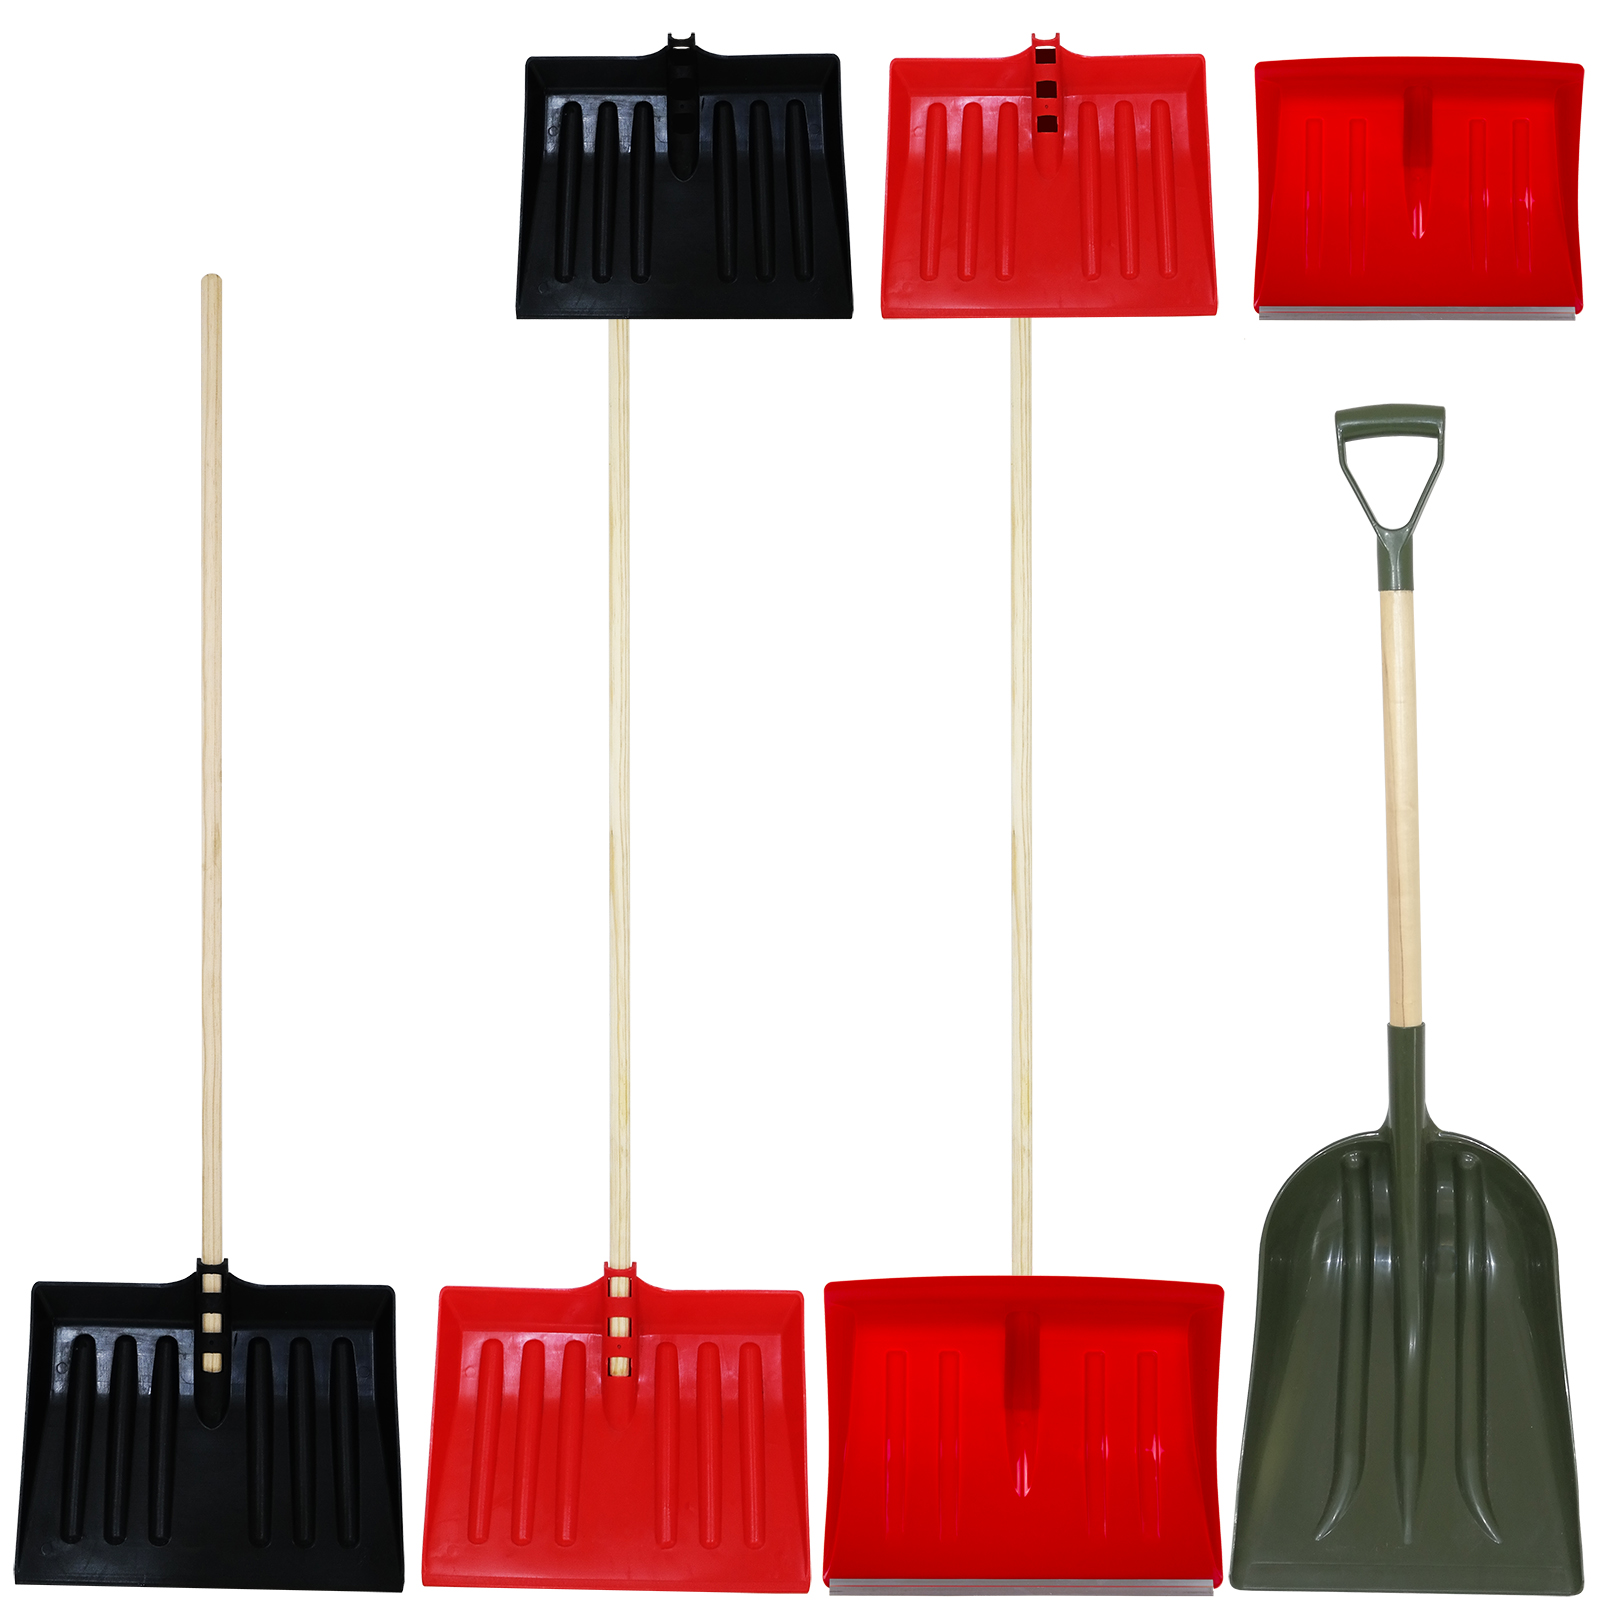 Details About Snow Shovel Pusher Scoop Wooden Handle Debris Spade Muck Mucking Out Metal Edged